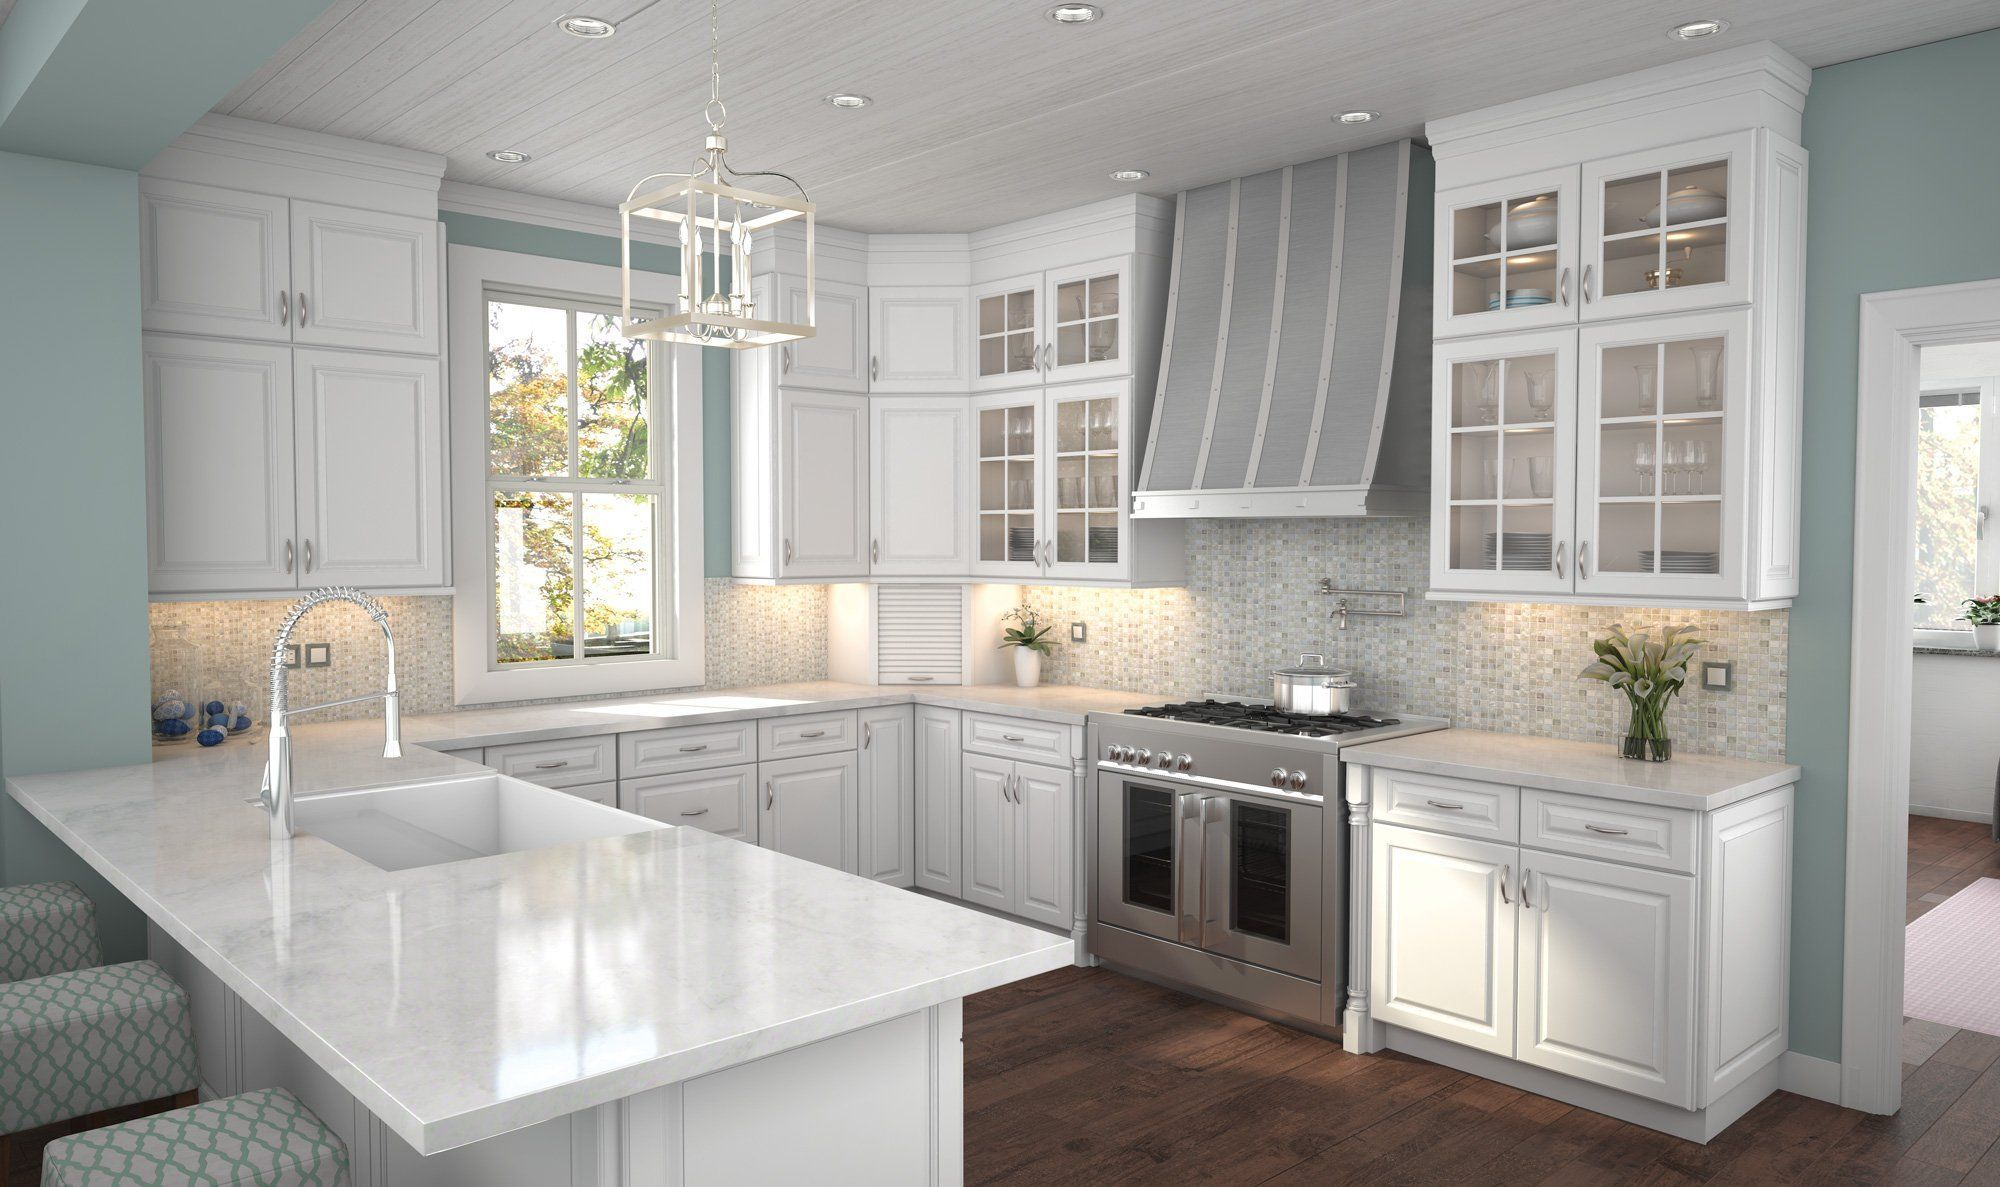 Newport Latte Kitchen Cabinetry Features Traditional Style Raised Front Panels Strong Lines And A Clean Crisp Wh Elegant Kitchens Kitchen Cabinets Cabinetry